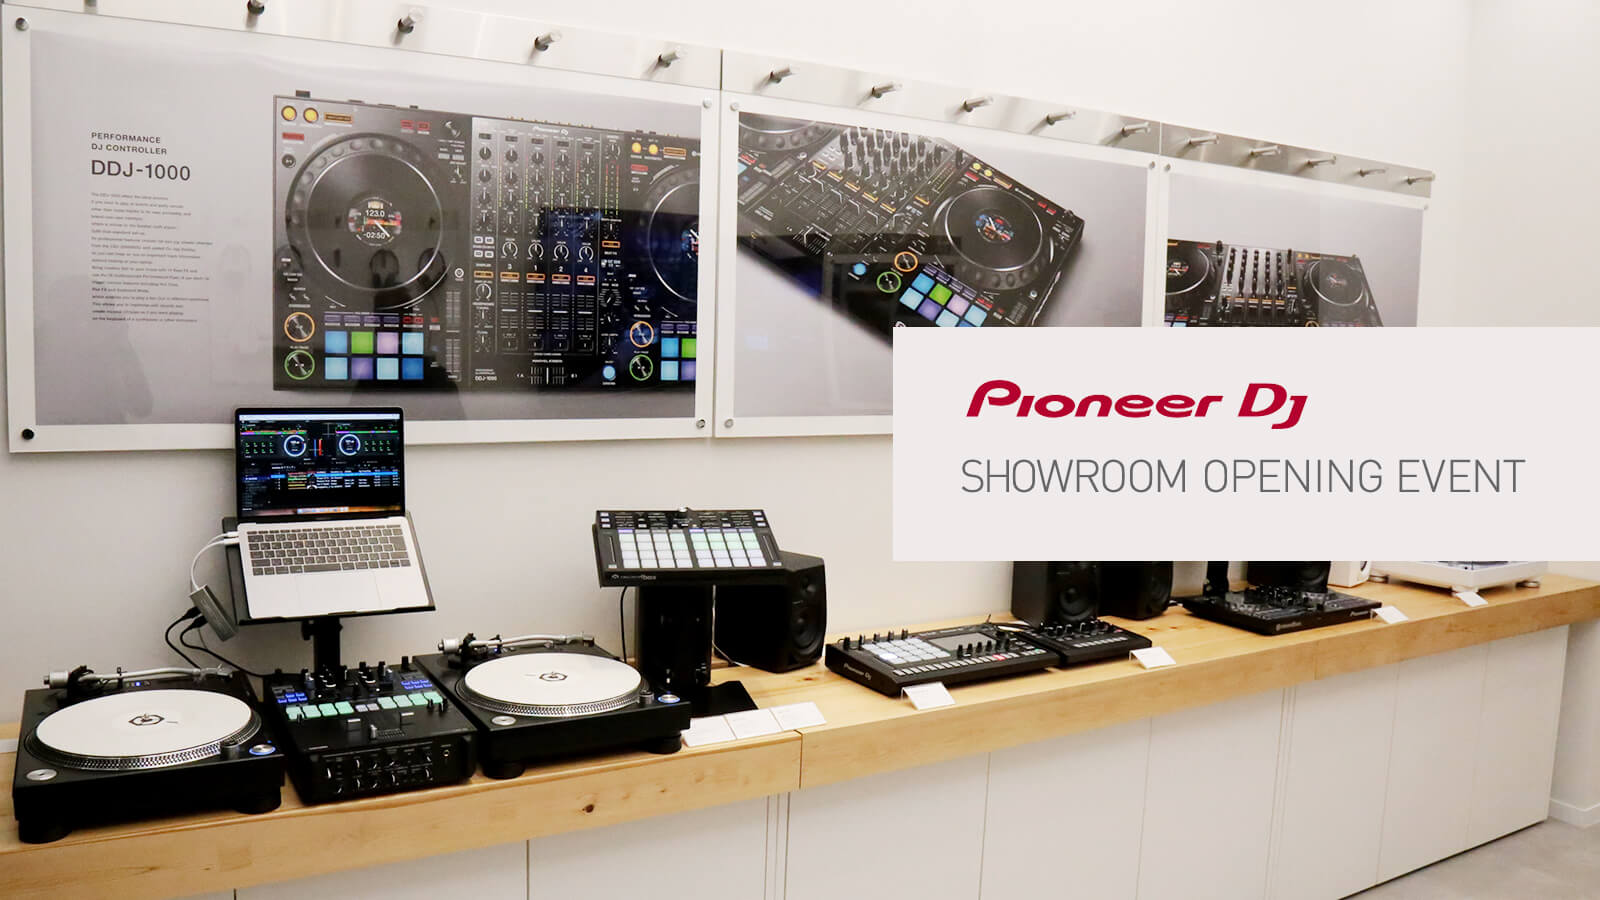 Pioneer DJ Showroom Opening Event